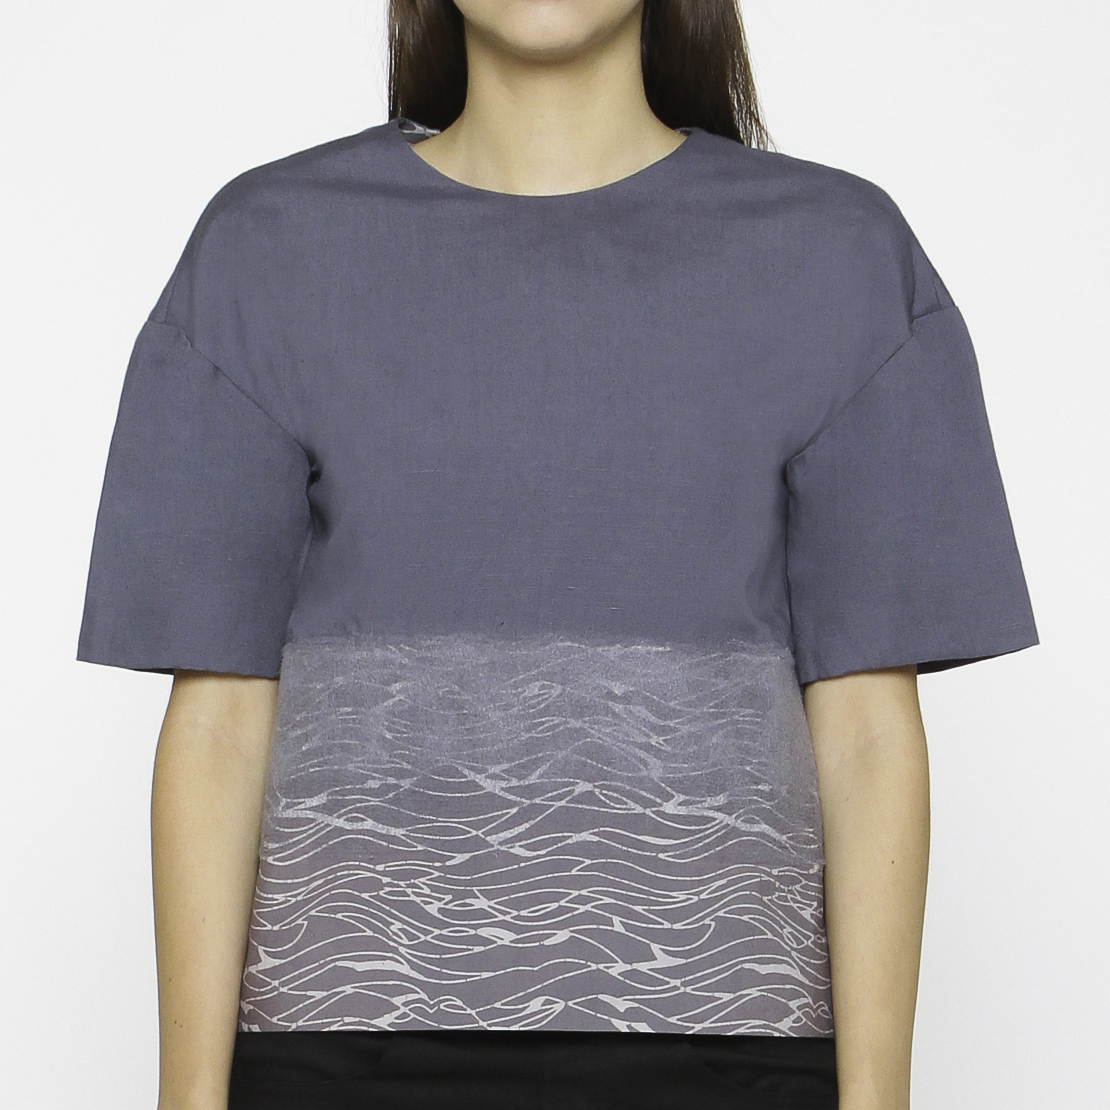 Women Morphing V-back Top : Gringsing Wave